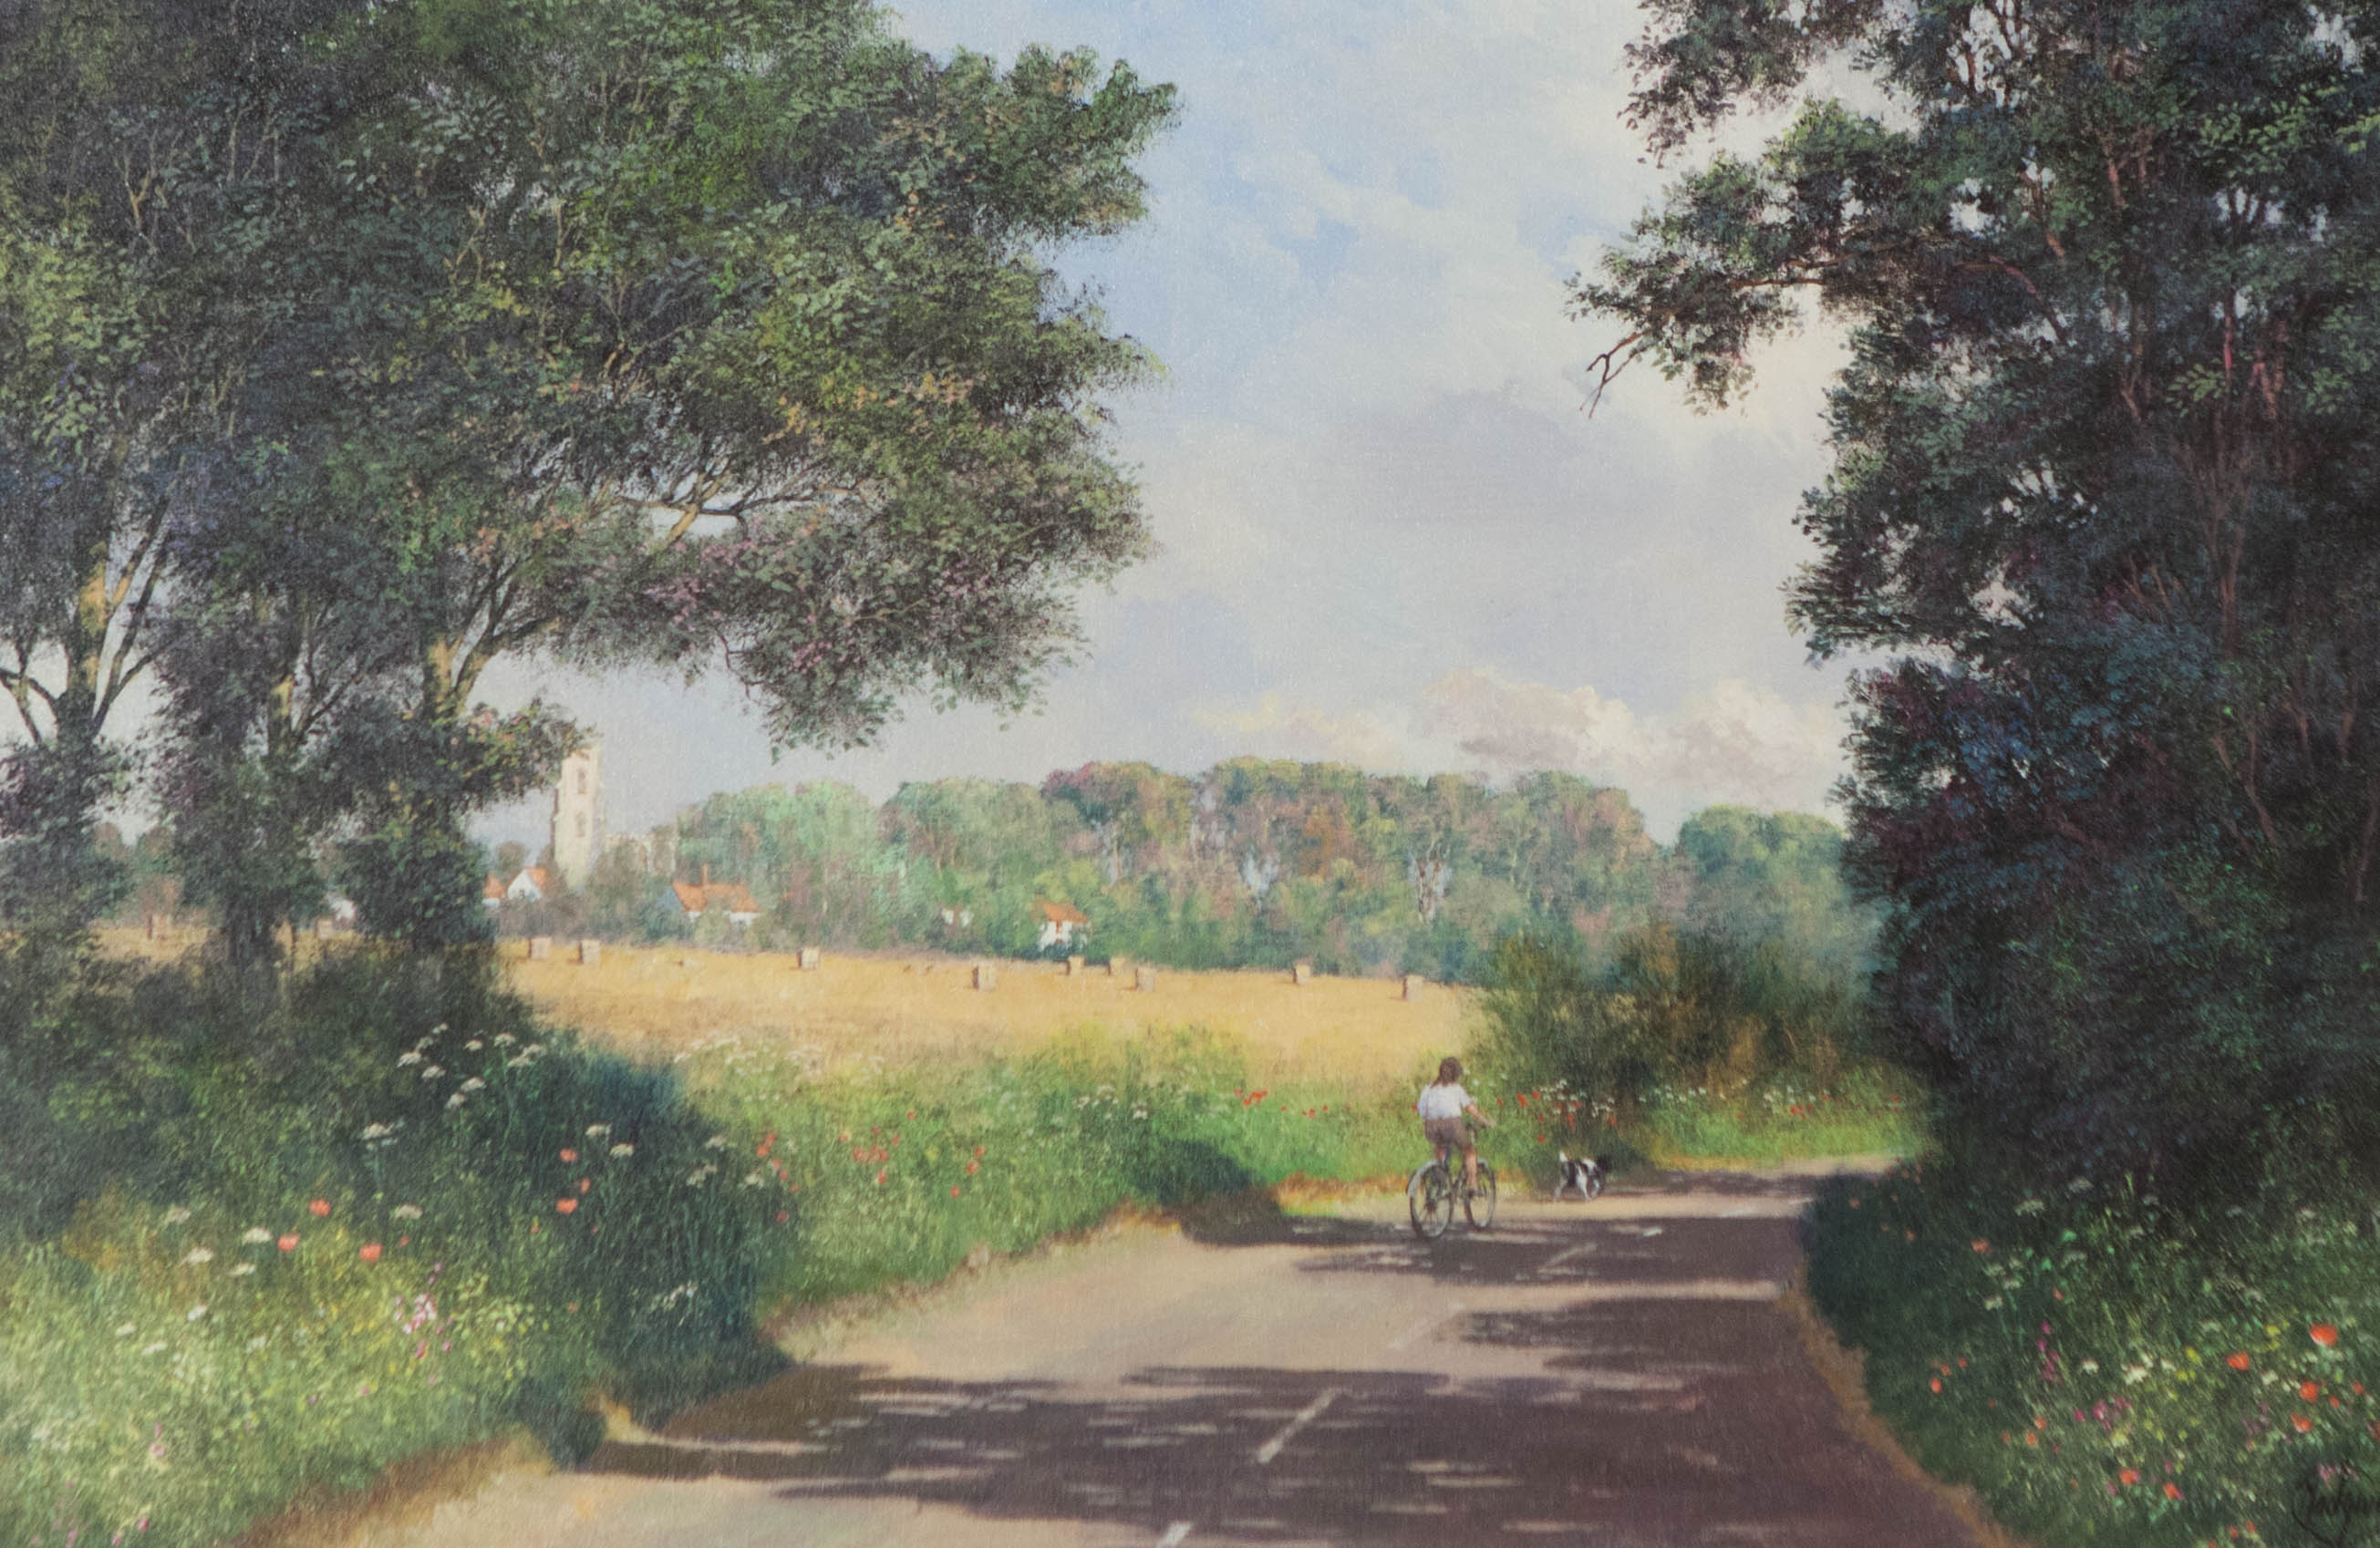 CYCLING ALONG COUNTRY ROAD